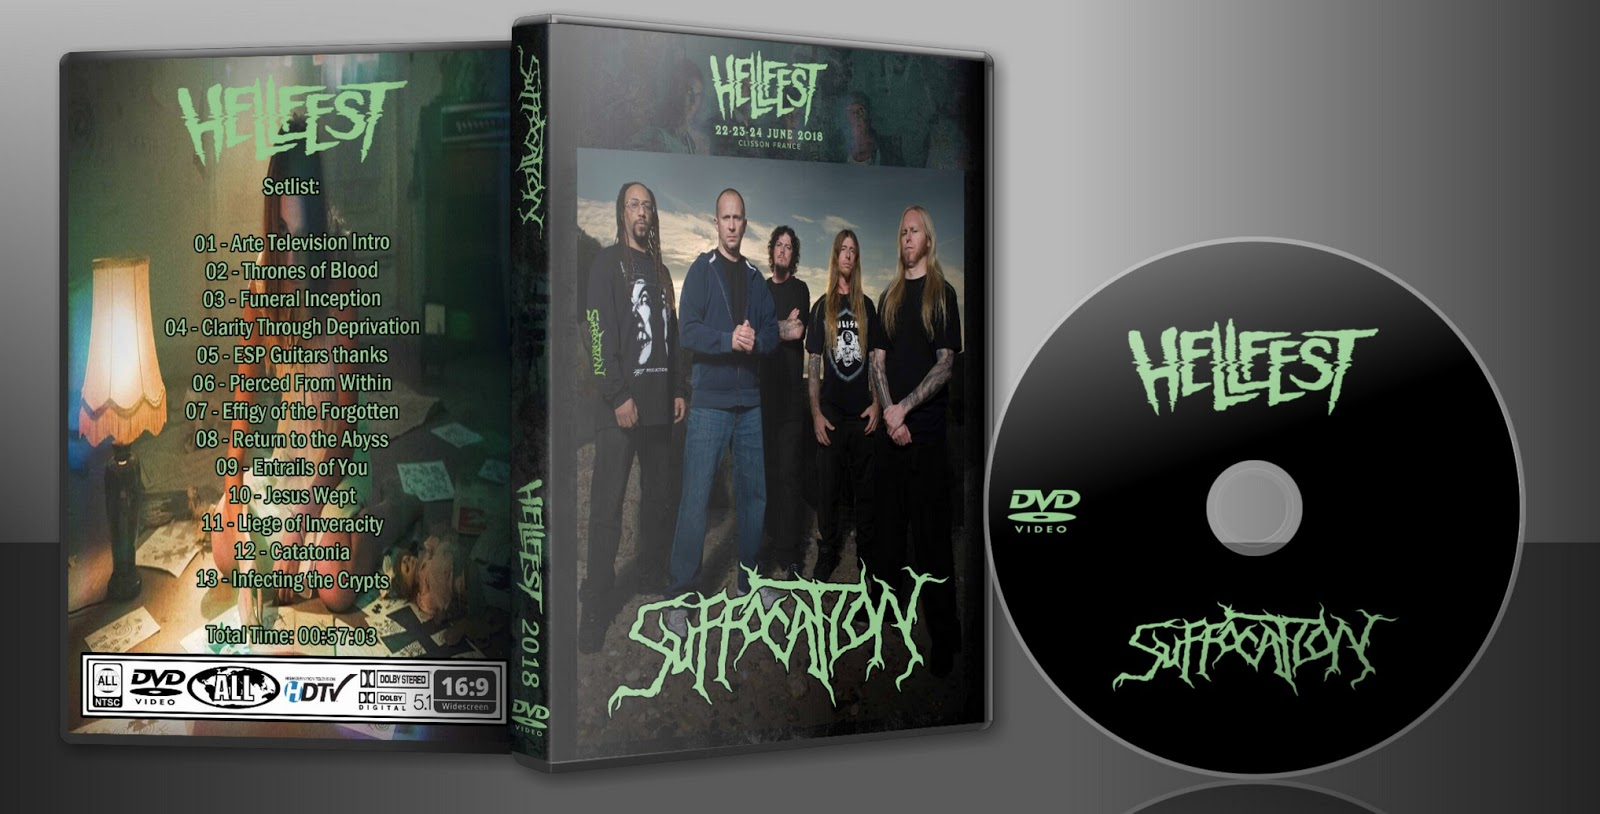 Arte Tv Hellfest 2017 Deer5001rockcocert Suffocation 2018 Hellfest Hd Webcast Dvd